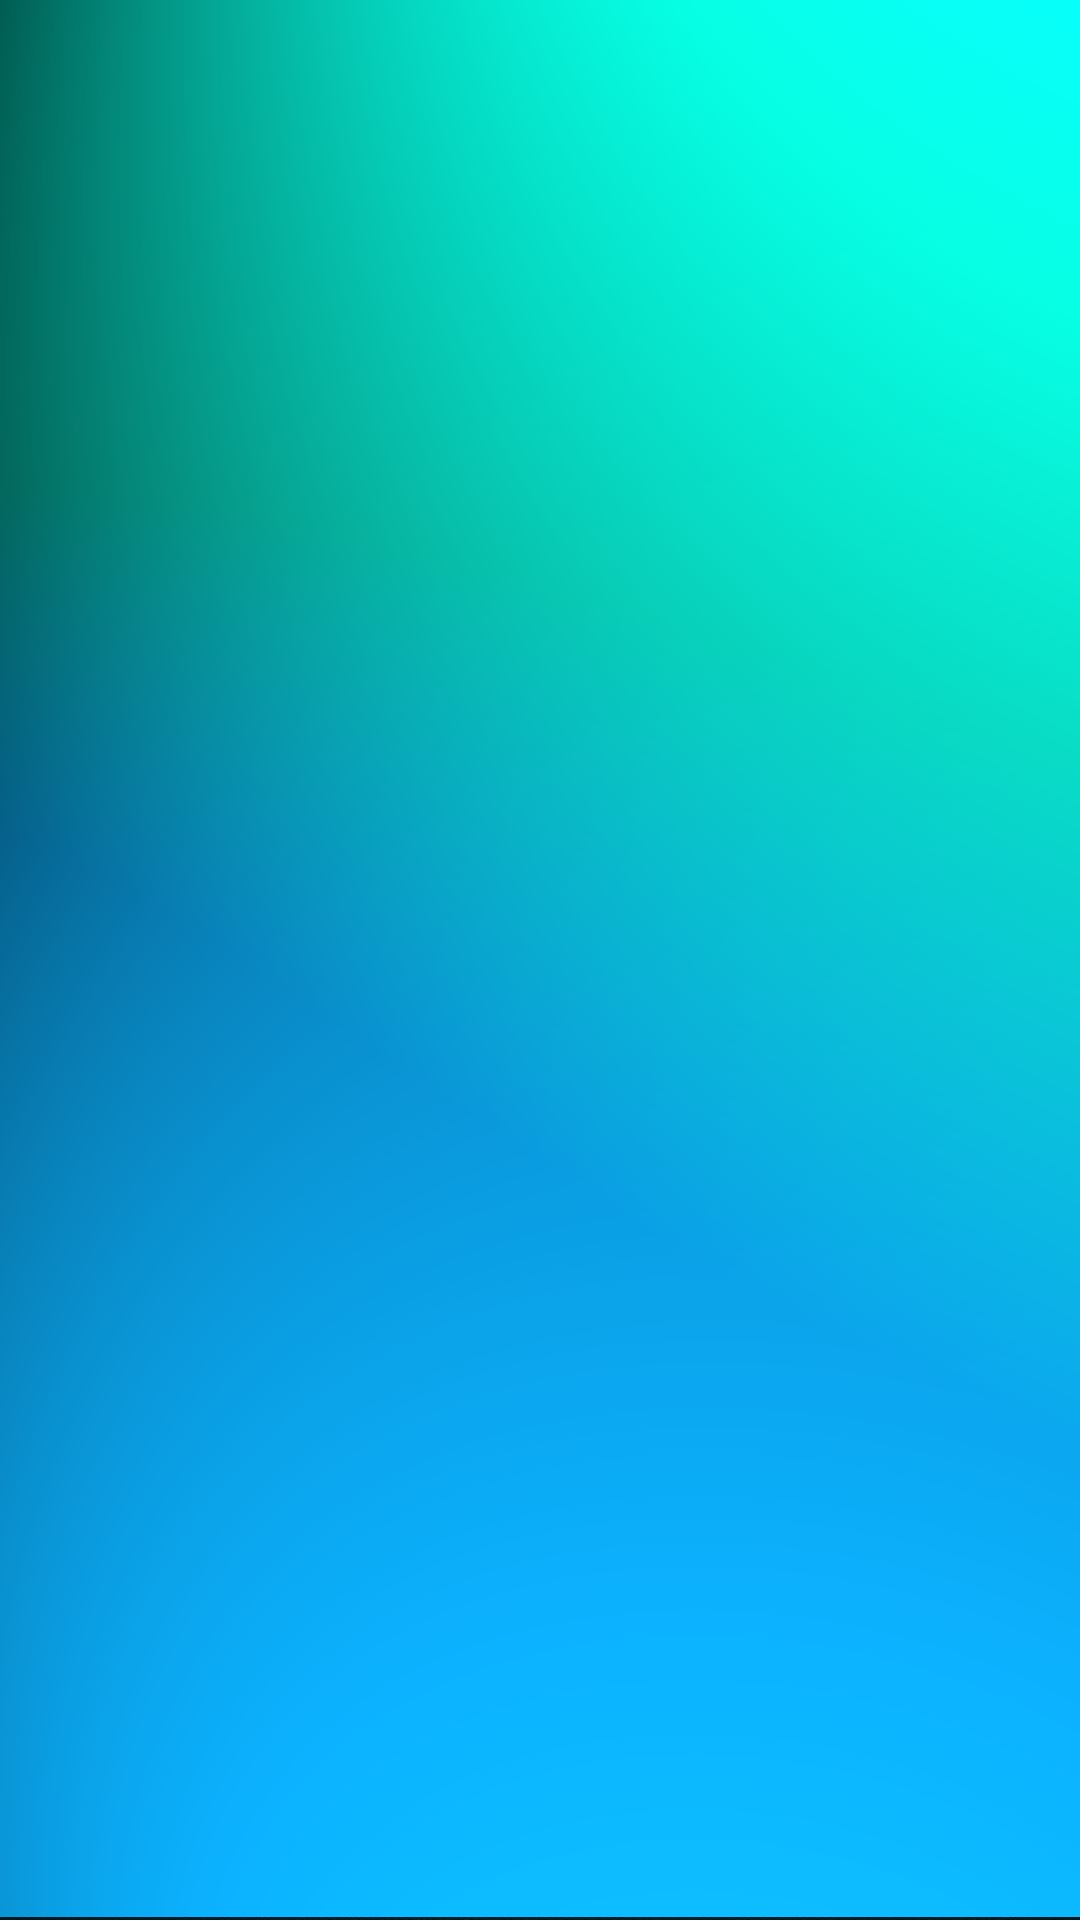 Green blue htc one wallpaper